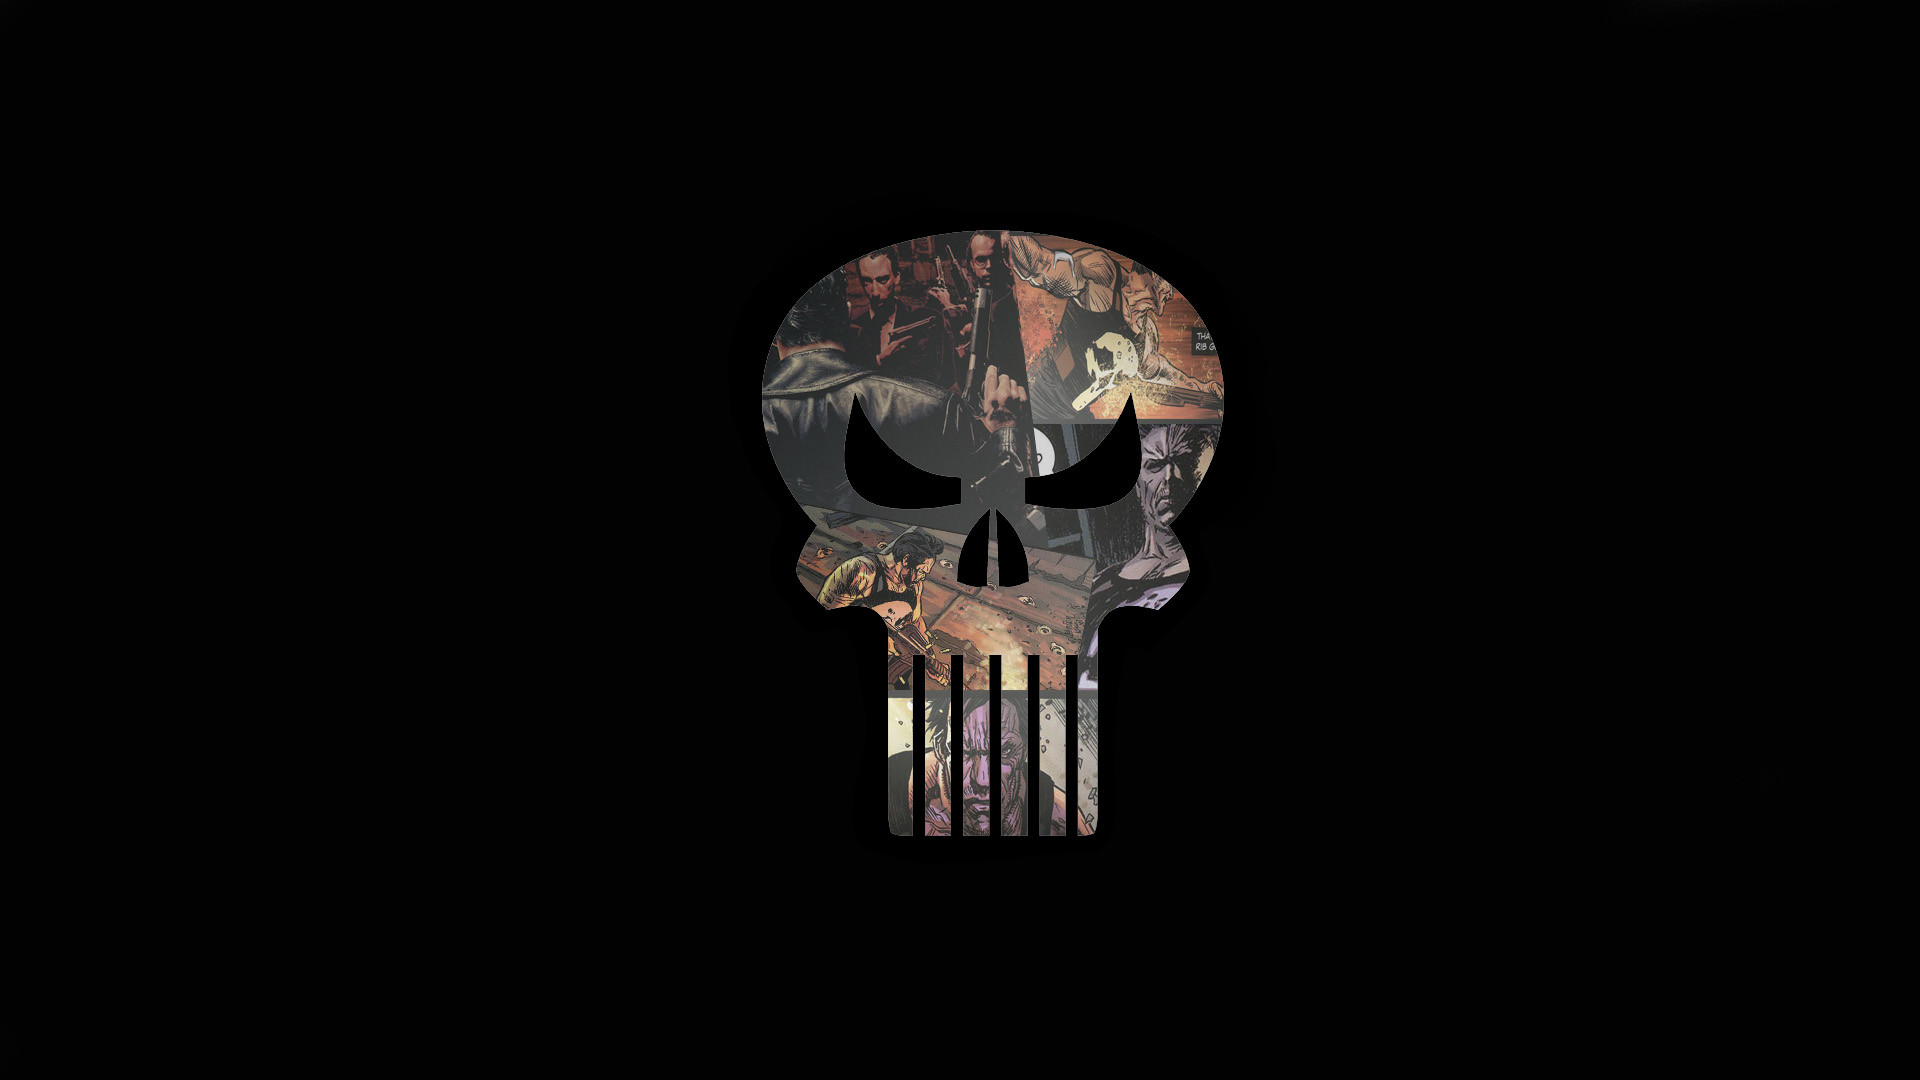 1920x1080 Punisher HD Wallpapers Backgrounds Wallpaper